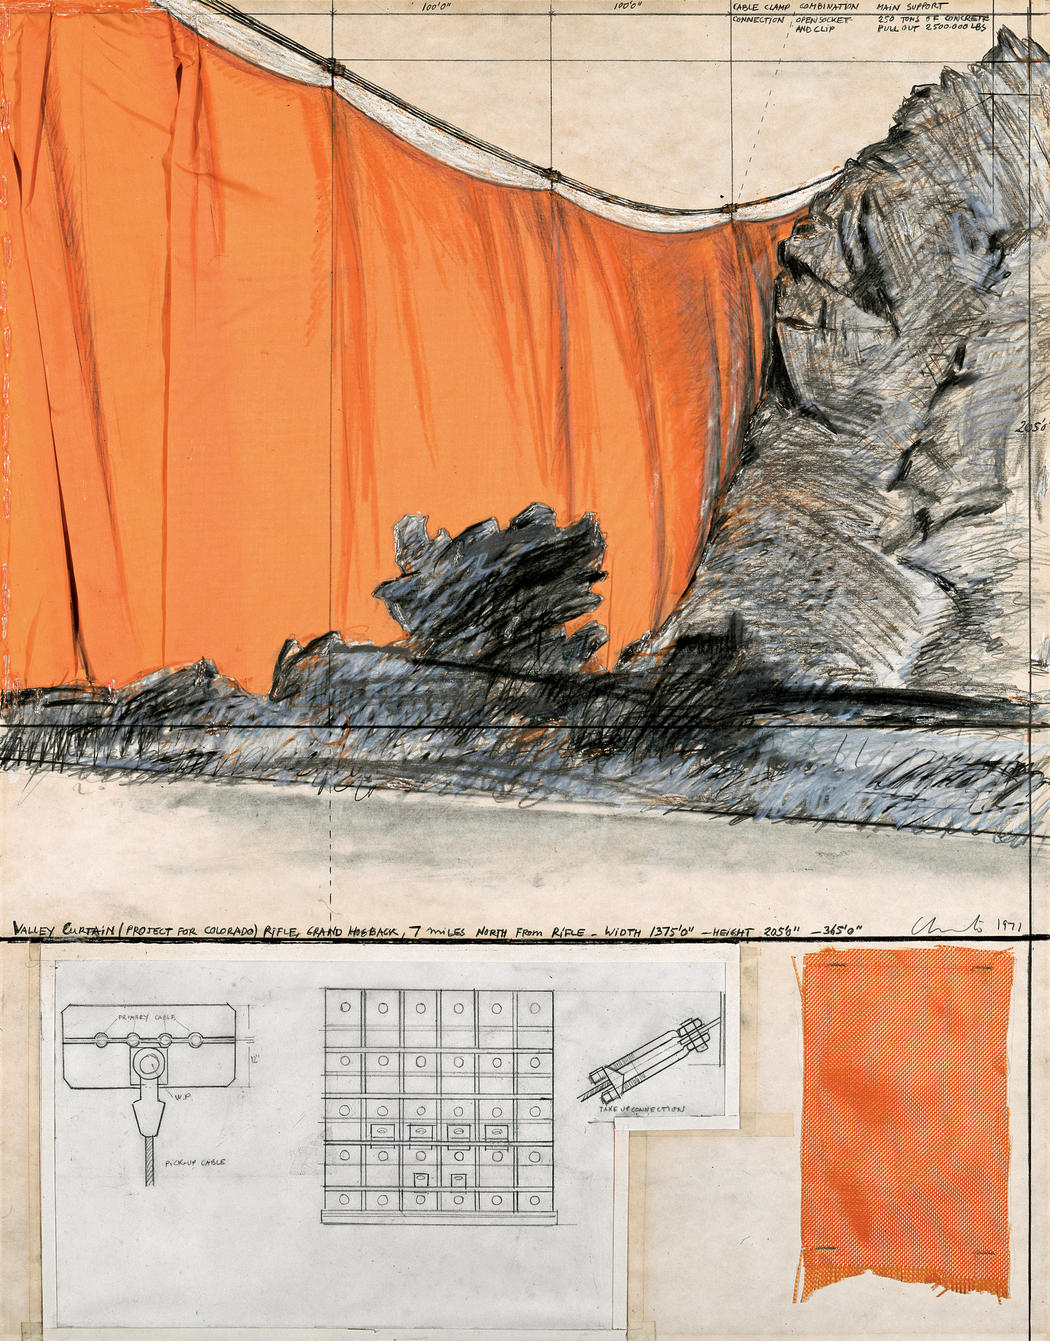 "Christo Valley Curtain (Project for Colorado) Collage 1971 Pencil, fabric, wax crayon, hand-drawn technical data, fabric sample, tape and staples 28 x 22"" (71 x 56 cm) Photo: Shunk-Kender © 1971 Christo"